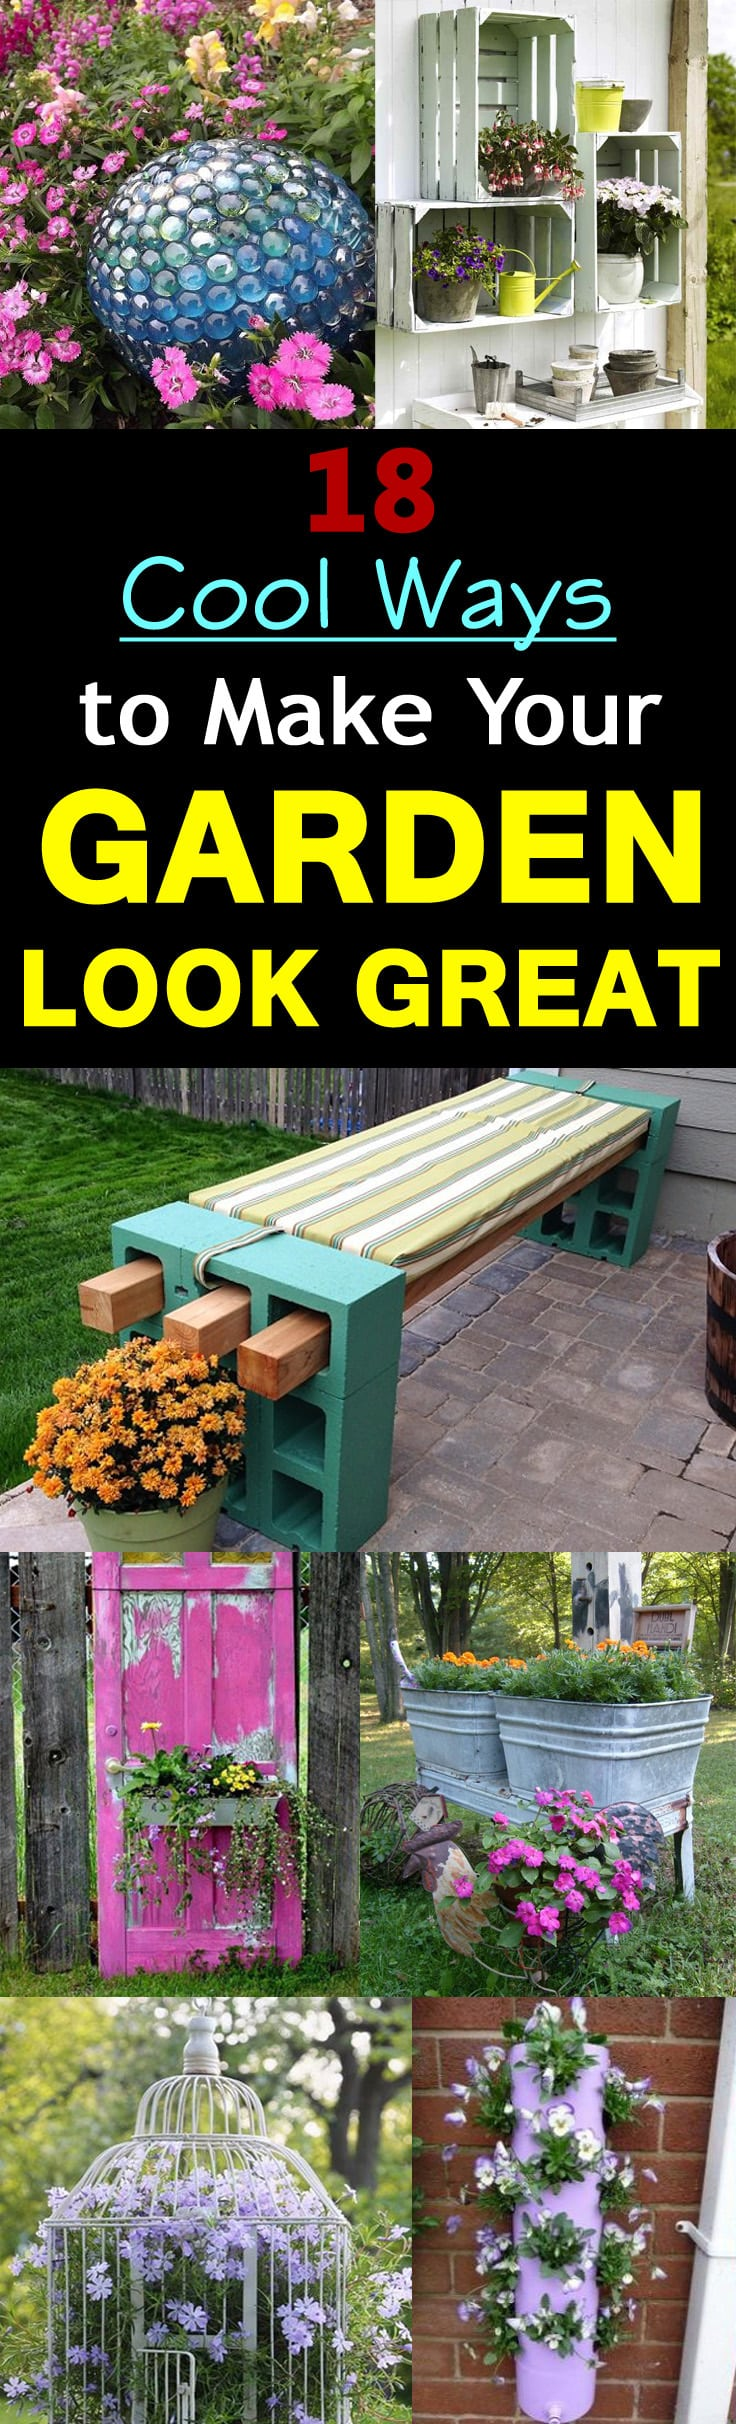 18 cool diy ideas to make your garden look great | balcony garden web